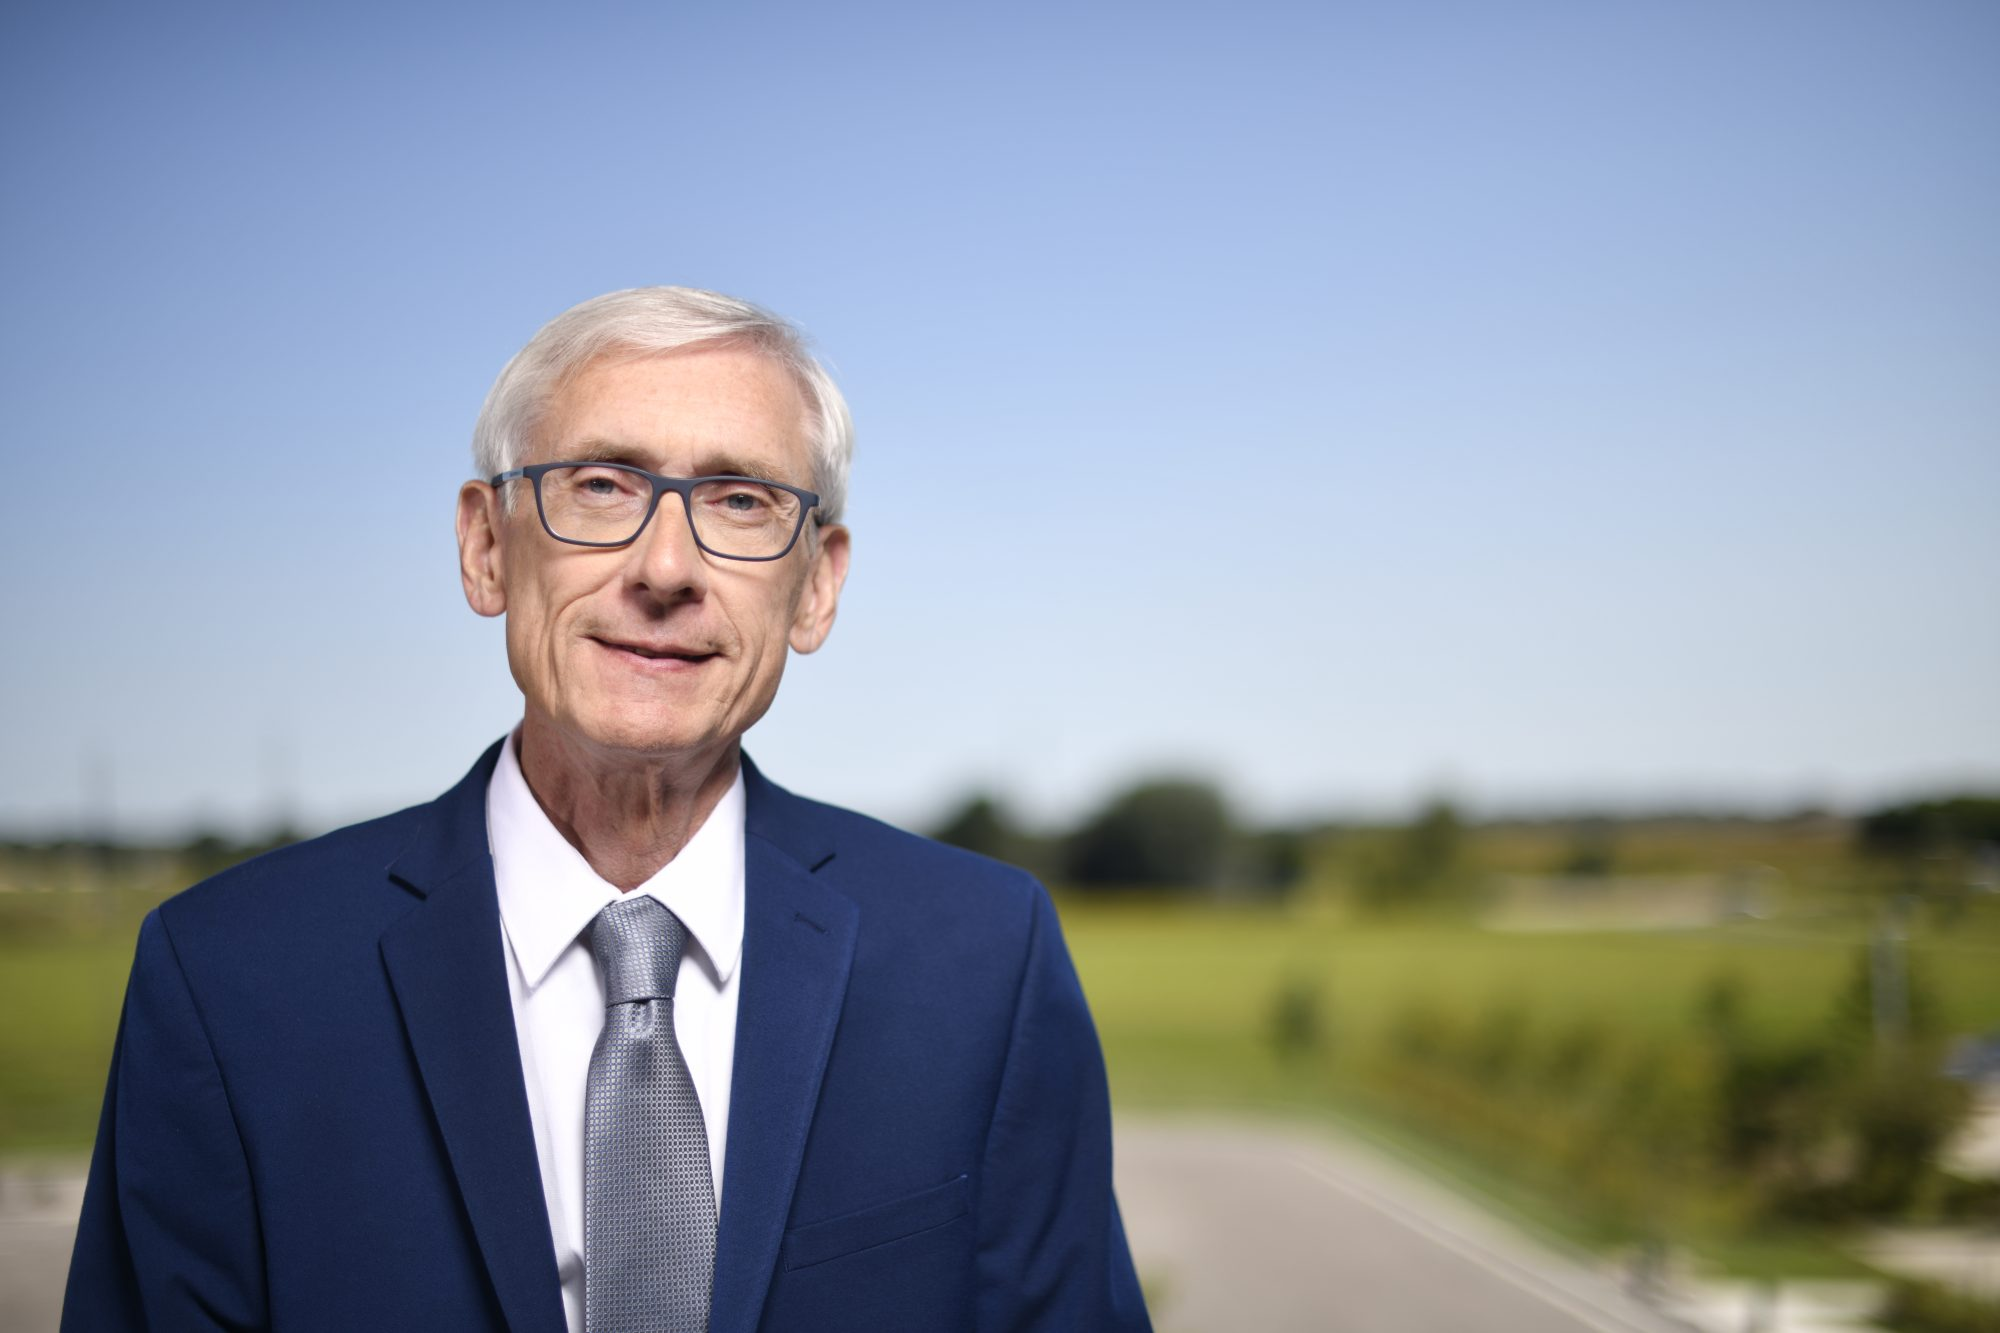 Gov. Evers Announces Appointments to the Wisconsin Women's Council